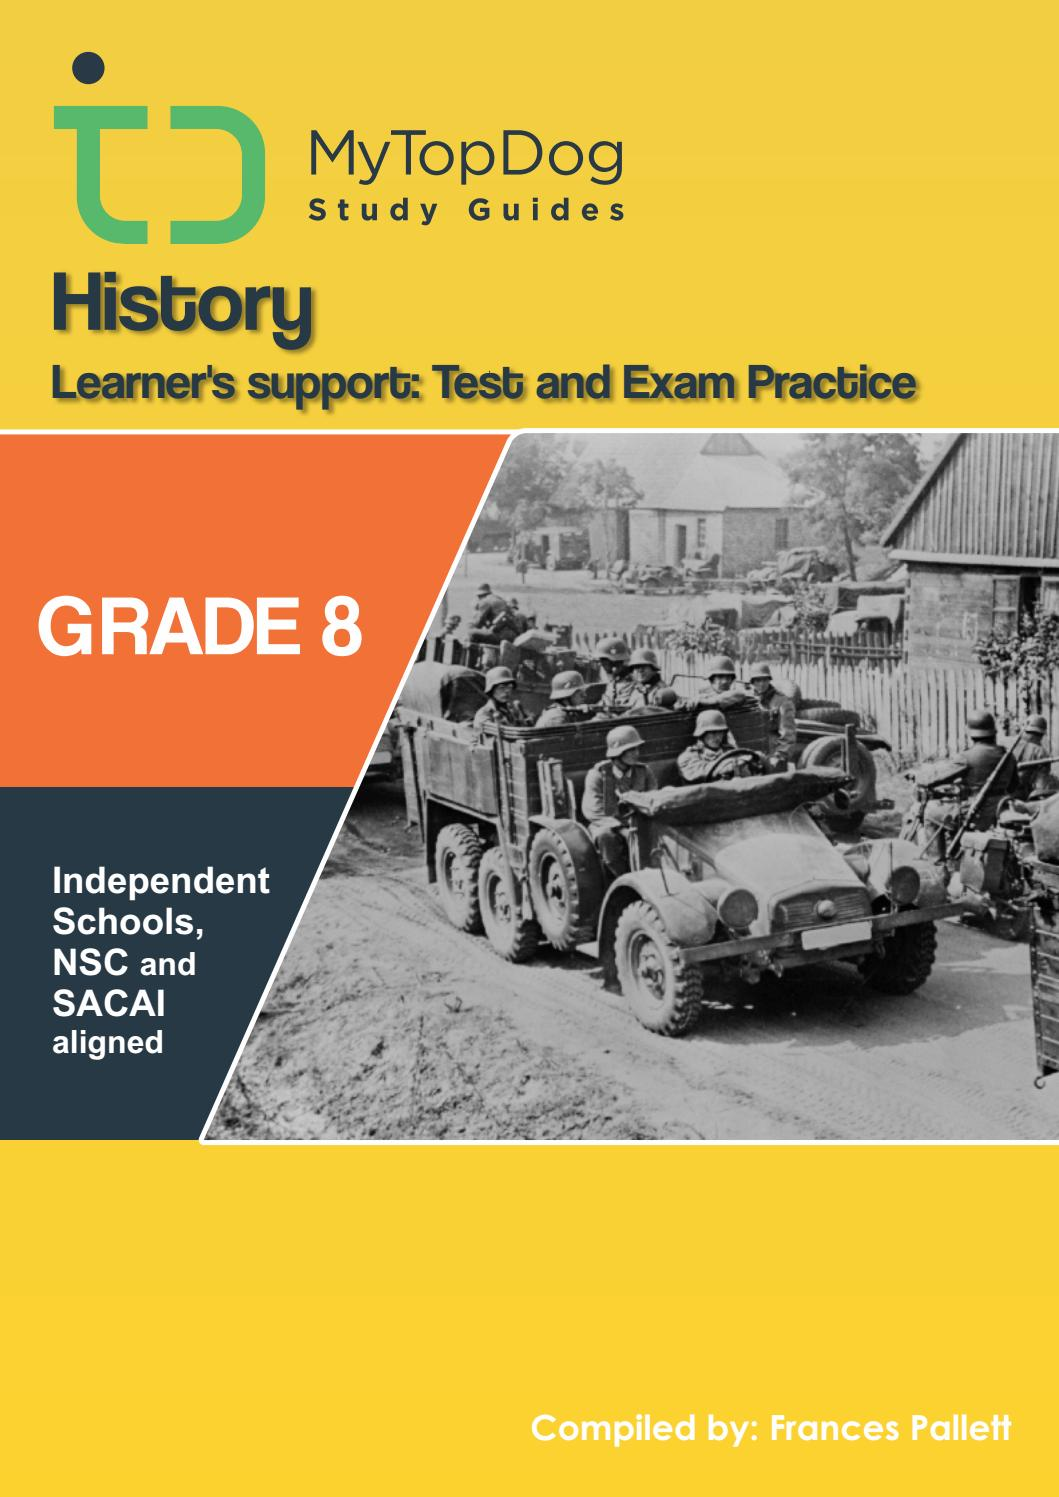 History Grade 8 Test and Exam Practice by Top Dog Education